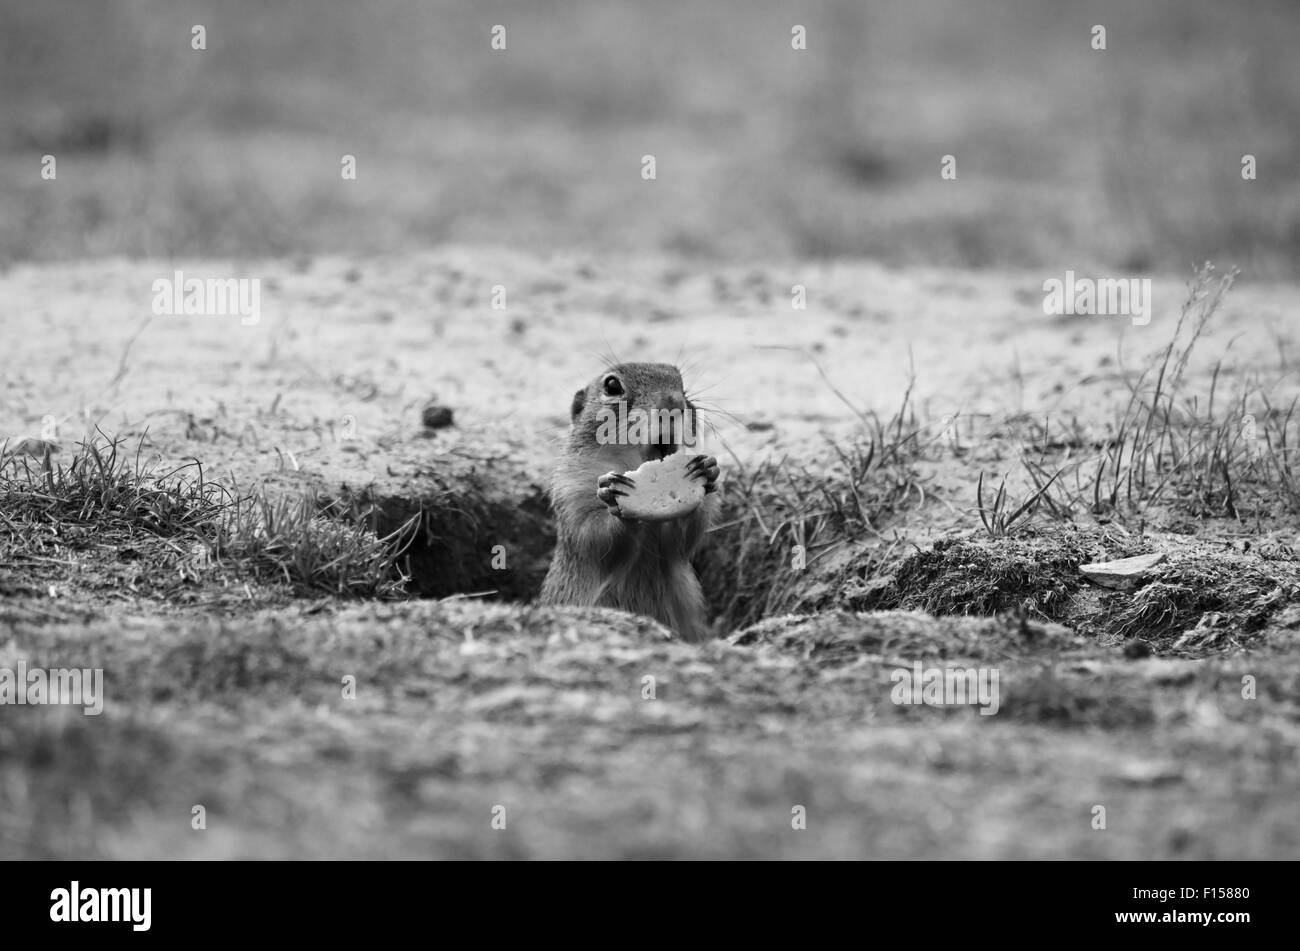 European Ground Squirrel ( Spermophilus citellus ) - Stock Image